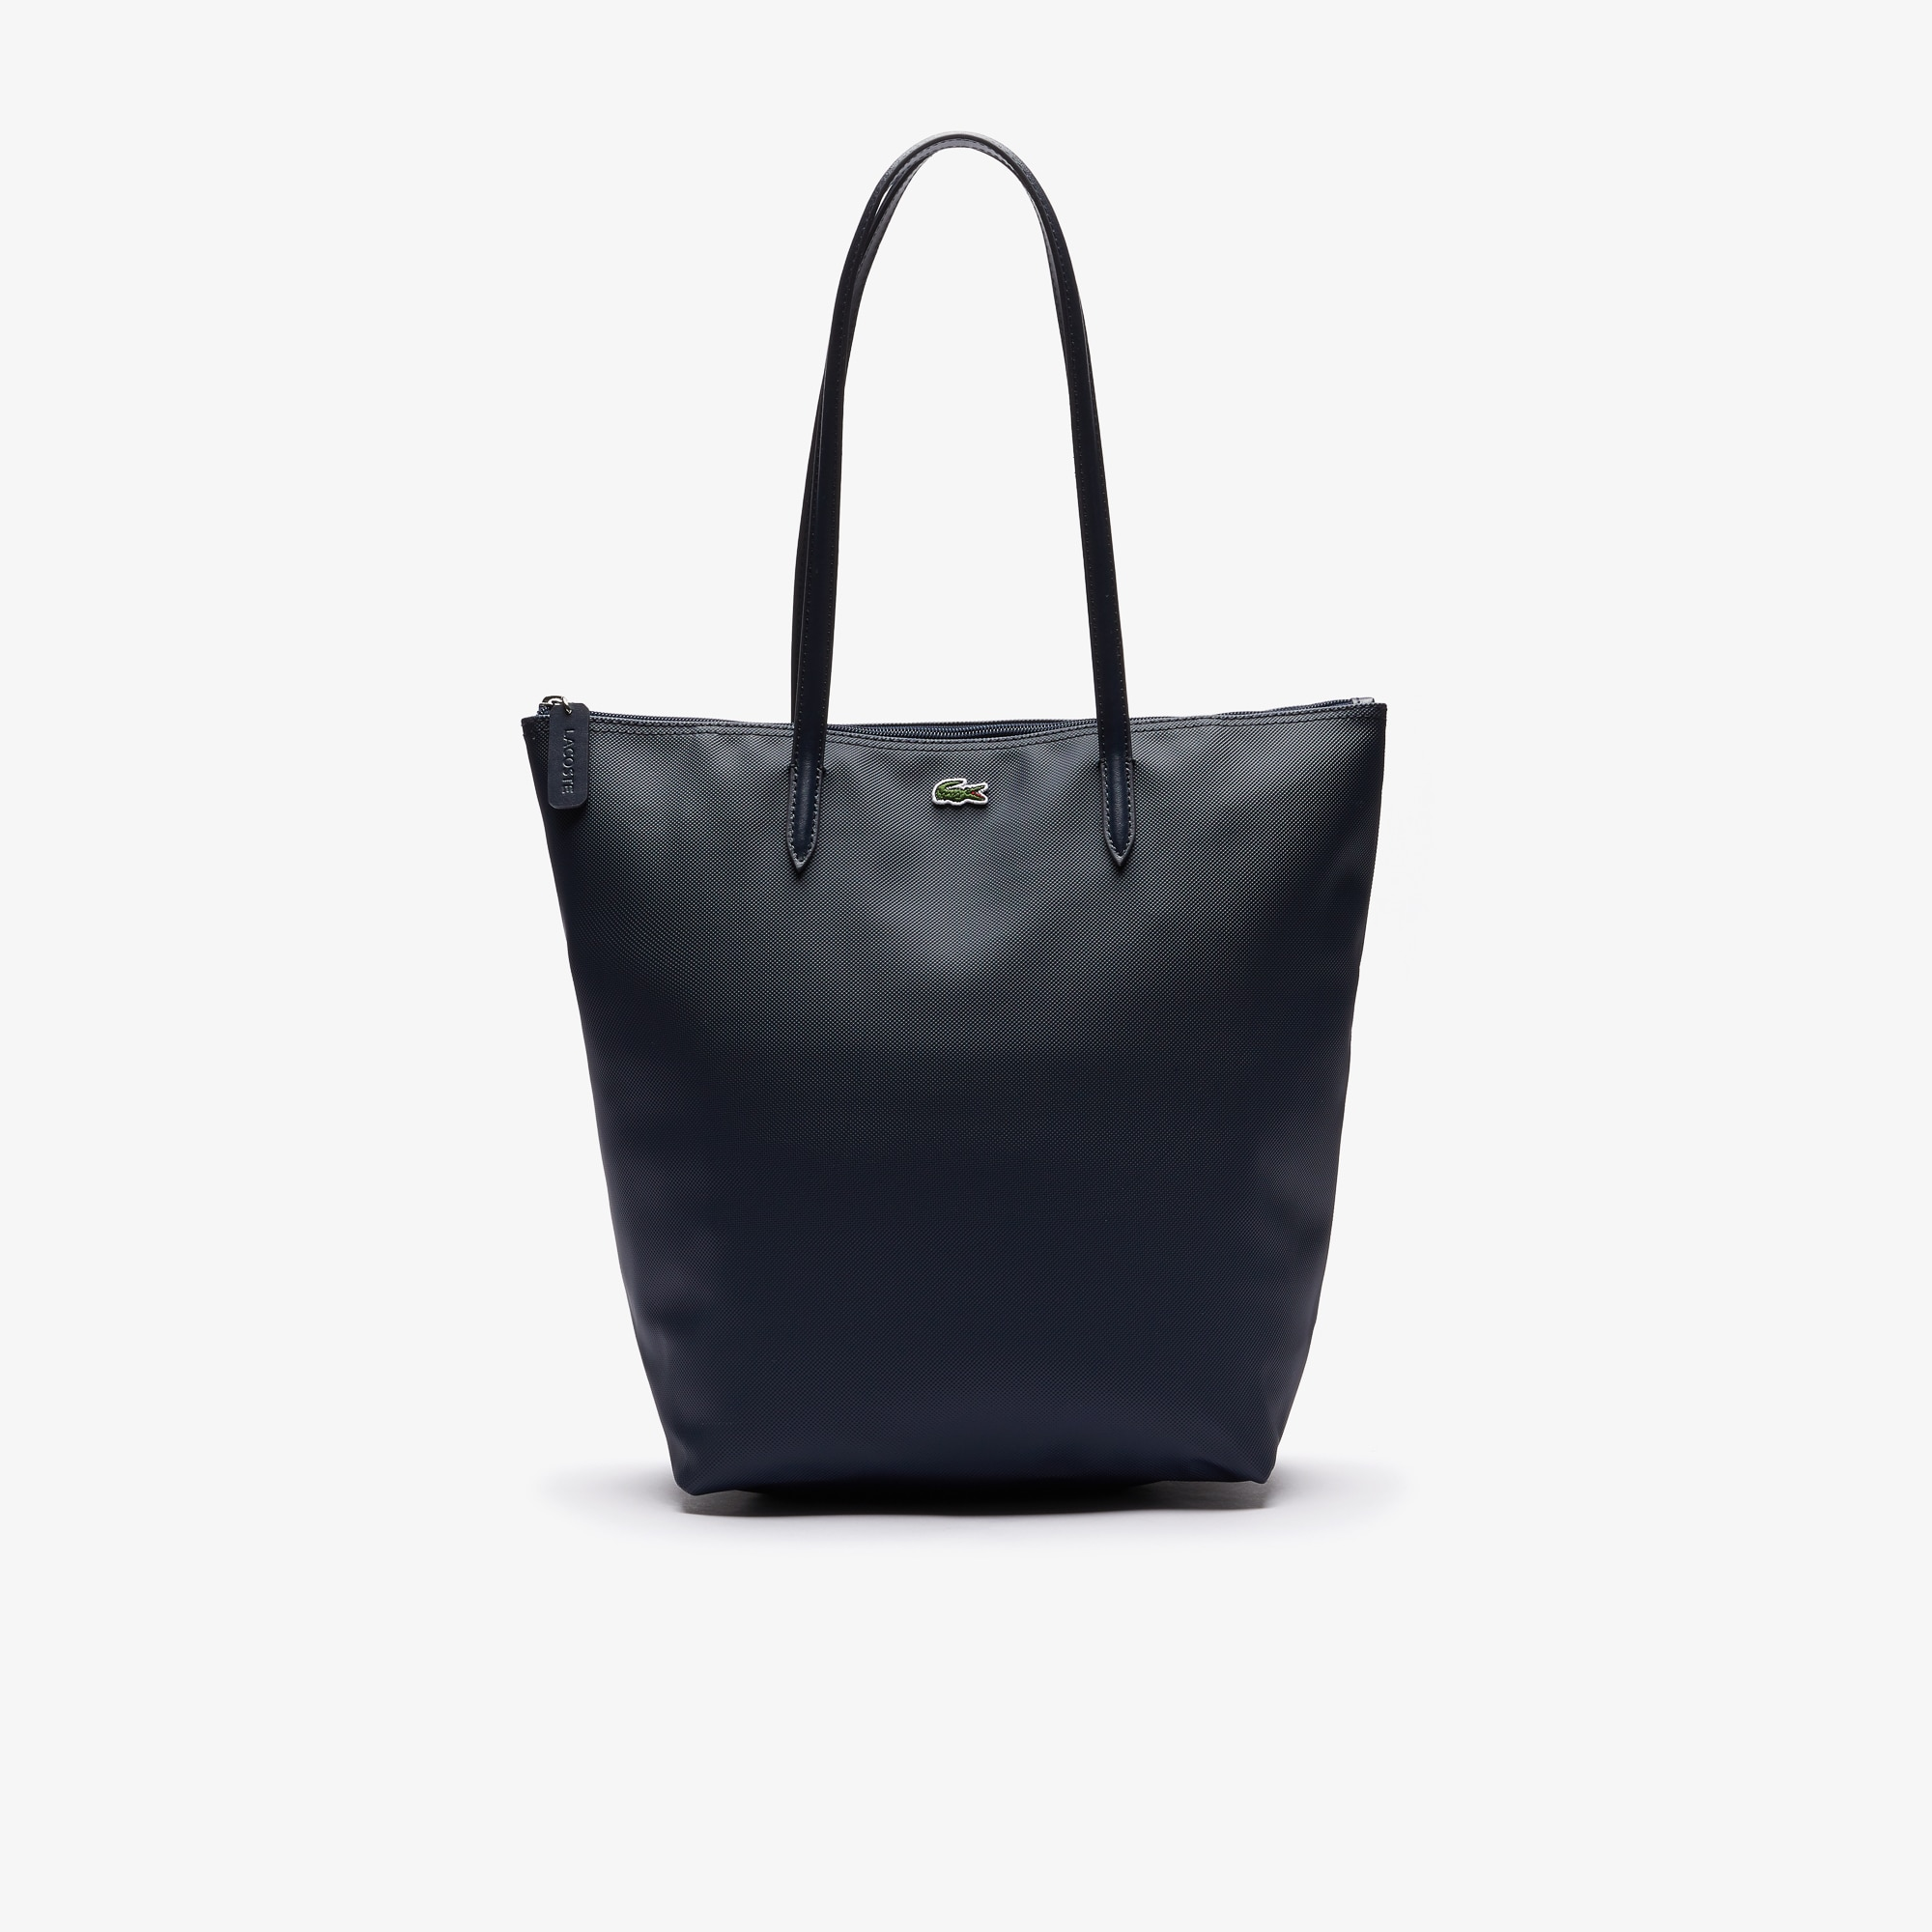 Women'S L.12.12 Concept Vertical Zip Tote Bag in Eclipse from Lacoste